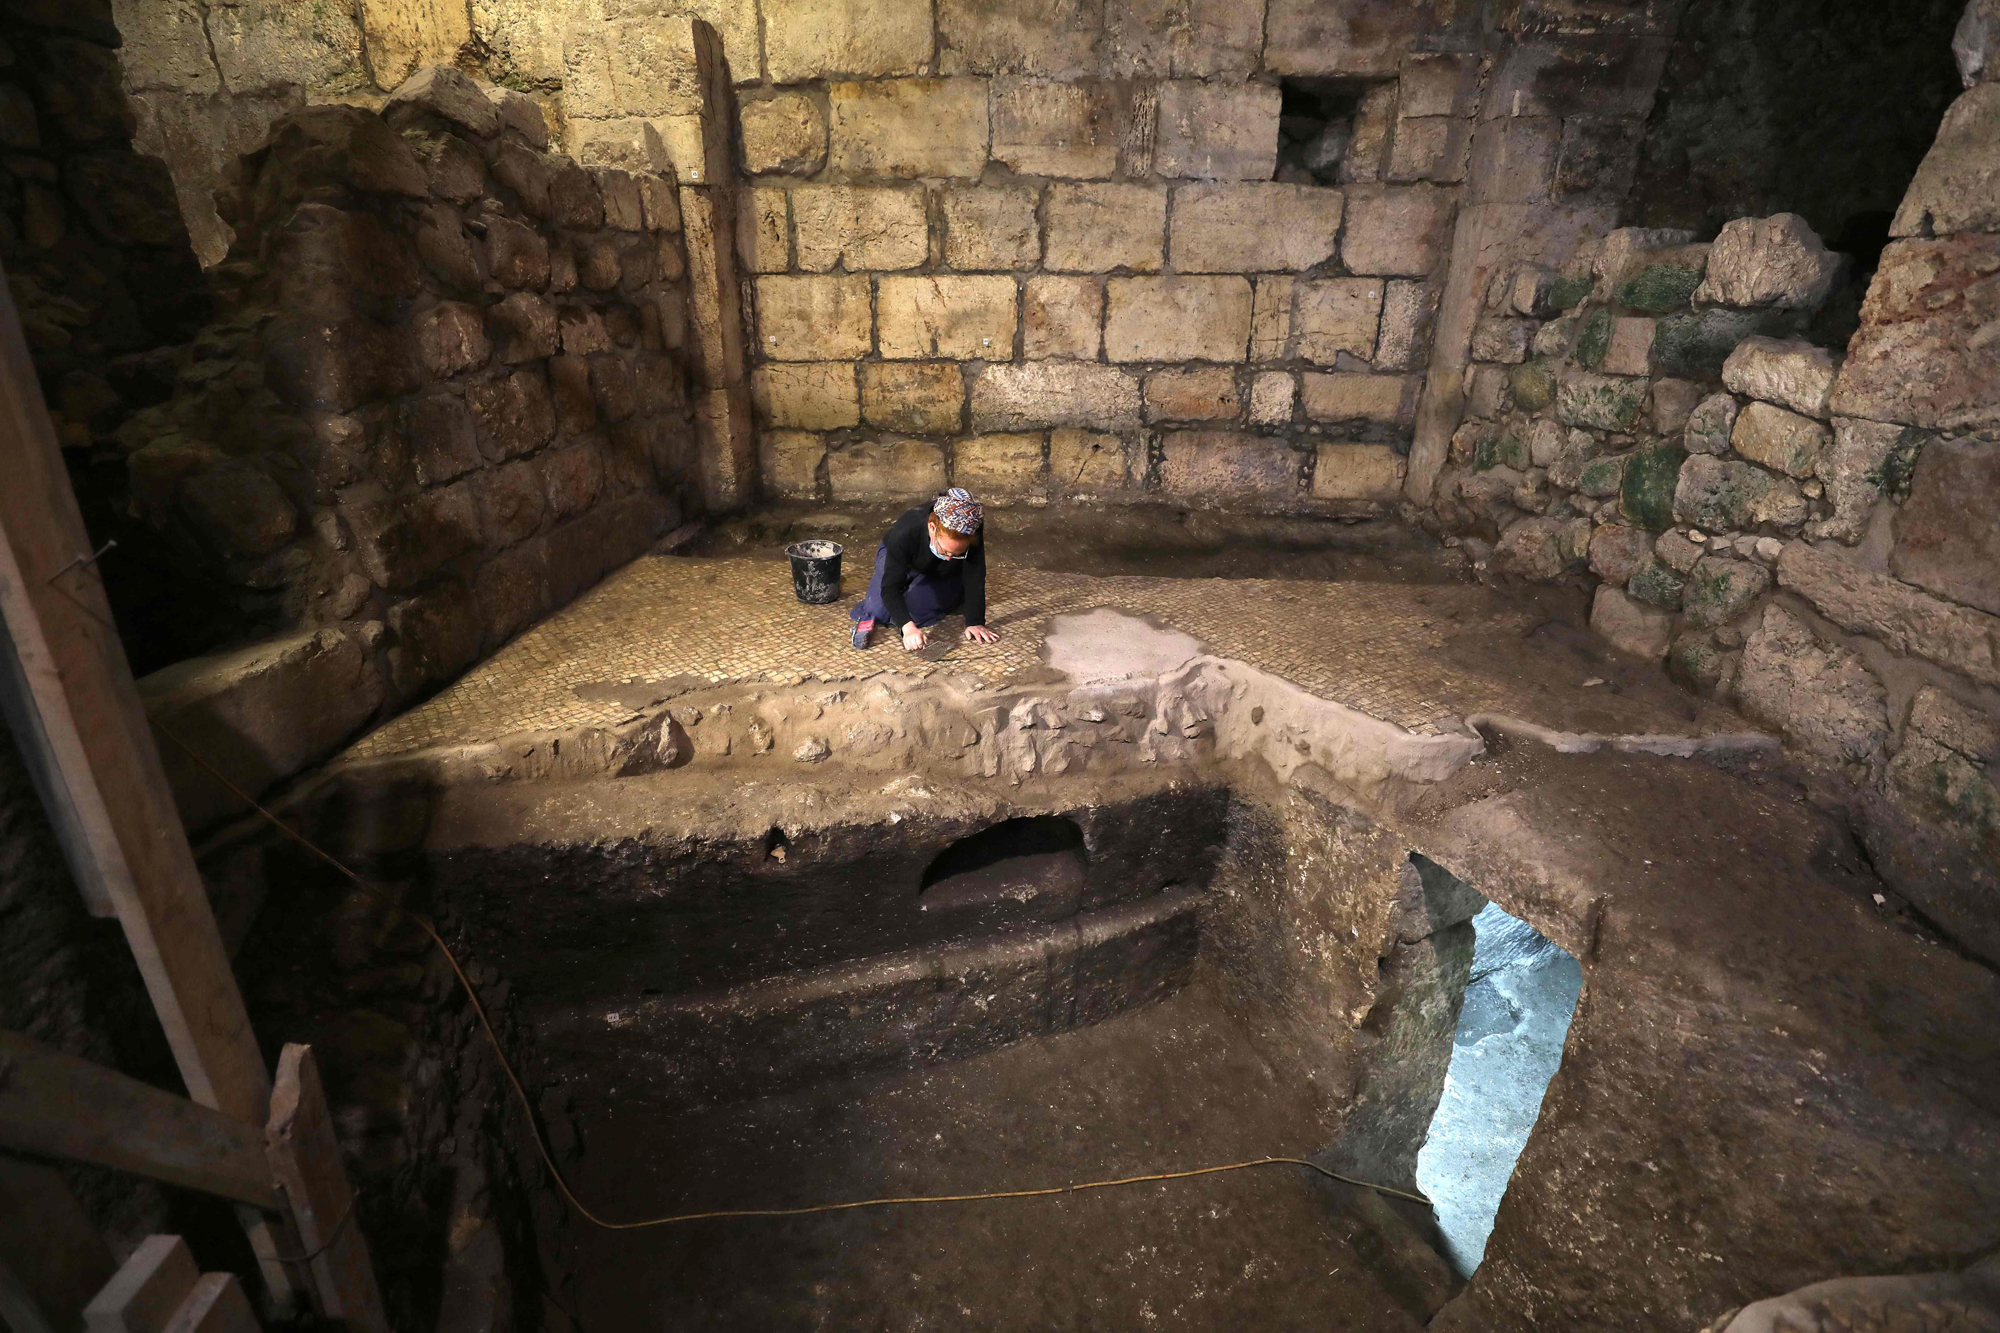 Tehila Sadiel, an archaeologist of the Israel Antiquities Authority, works at an excavation at a subterranean system hewn in the bedrock beneath a 1400-year-old building near the Western Wall in Jerusalem's Old City, on May 19, 2020. (Photo by MENAHEM KAHANA / AFP)